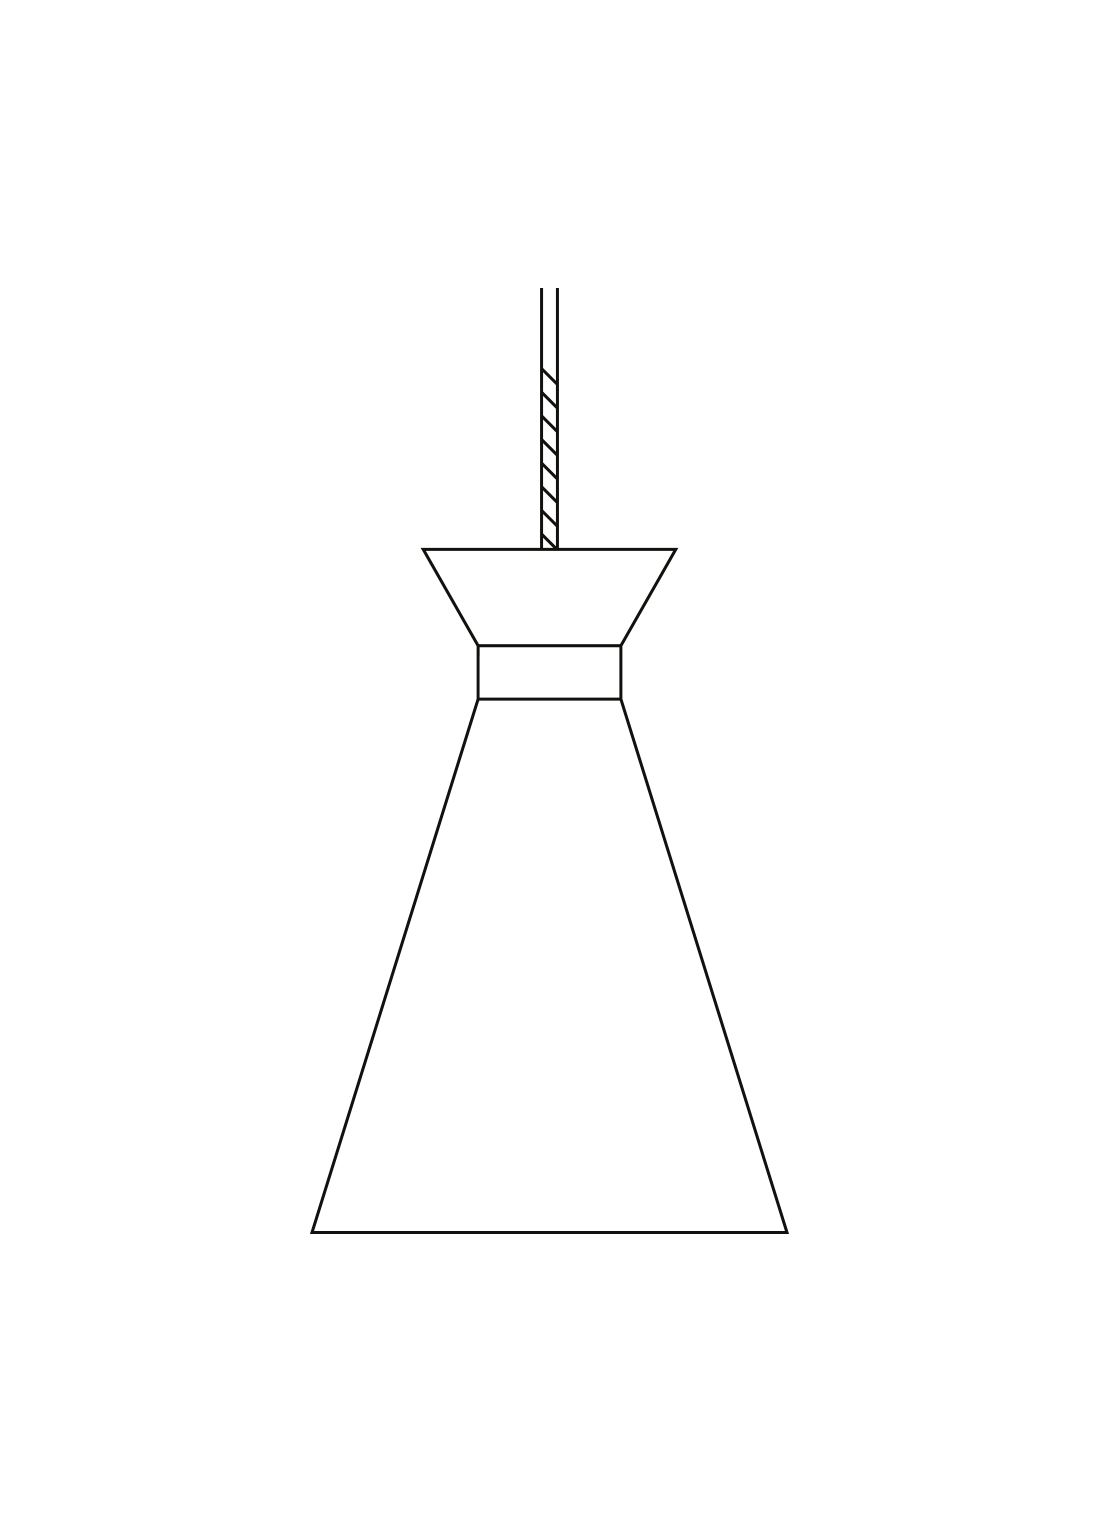 cone pendel illustration